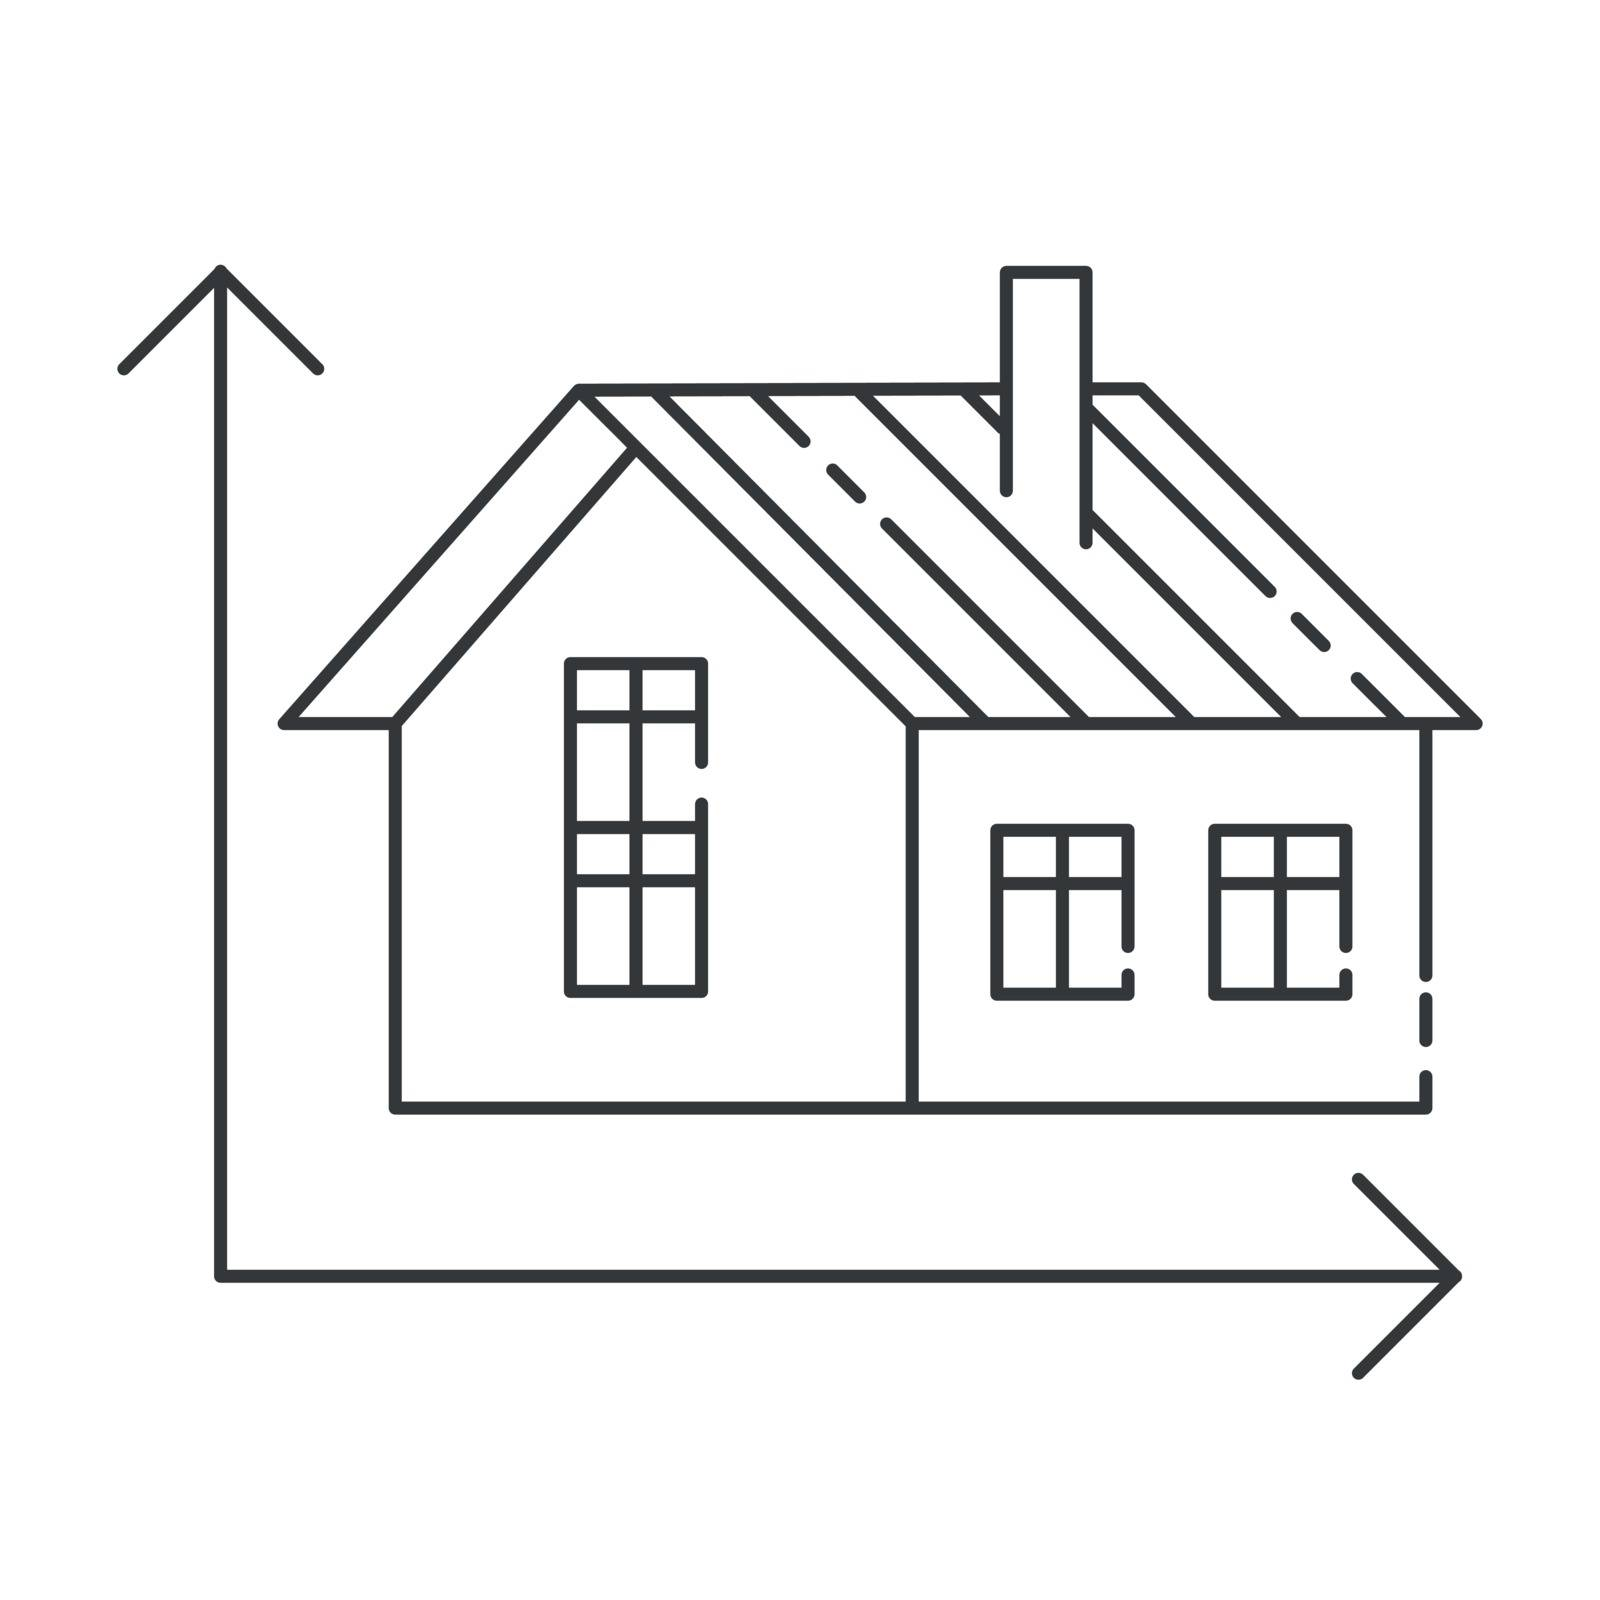 Vector illustration of modern icon depicting a home measurement concept. High quality black outline logo for web site design and mobile apps. Vector illustration on a white background.